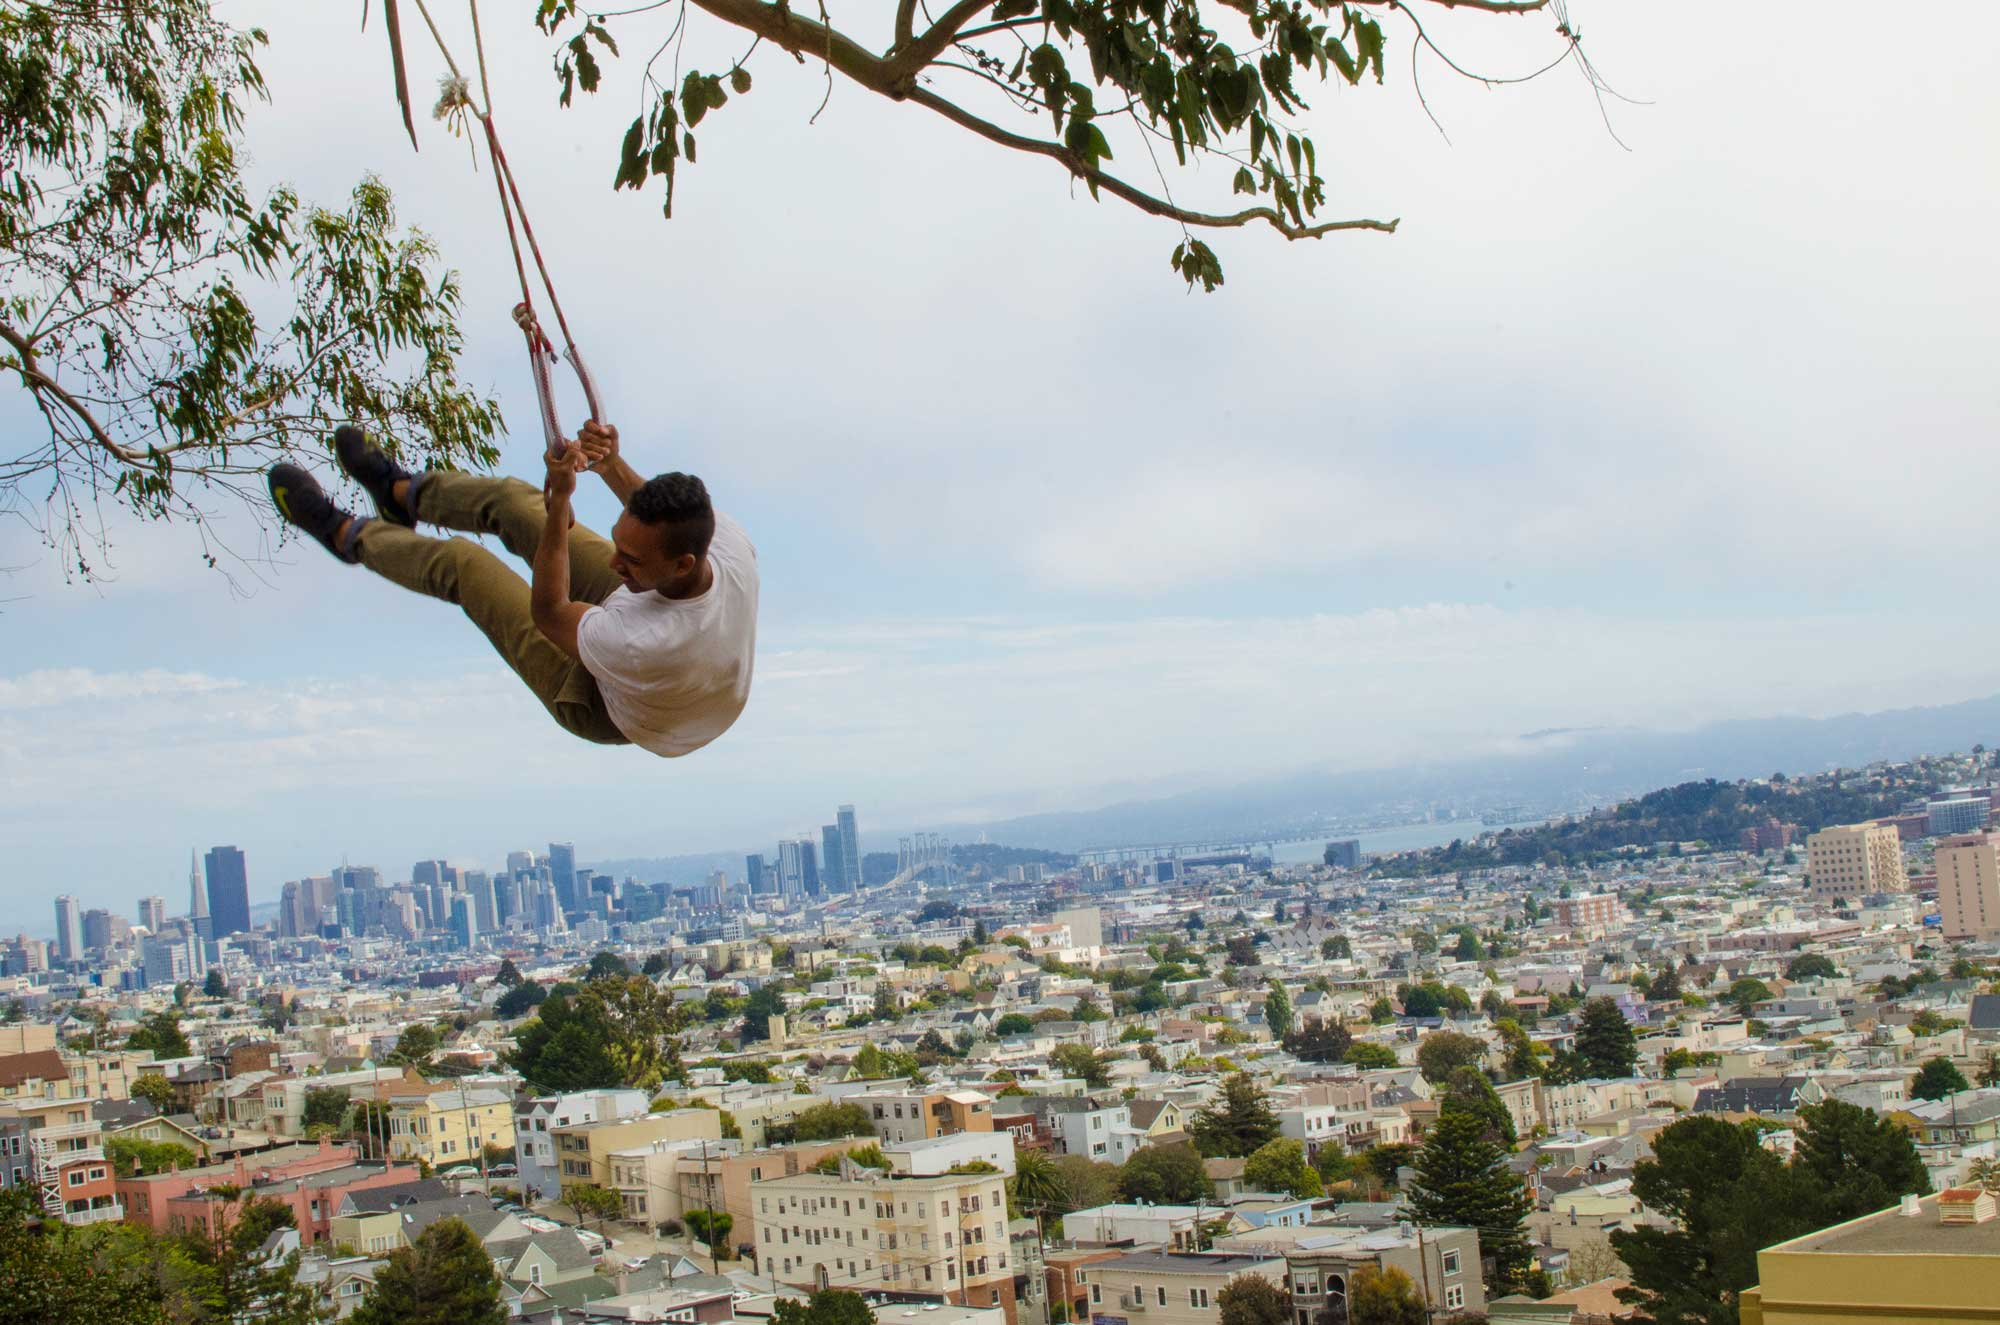 Billy Goat Hill Park features hiking trails and amazing views of the city and bay.